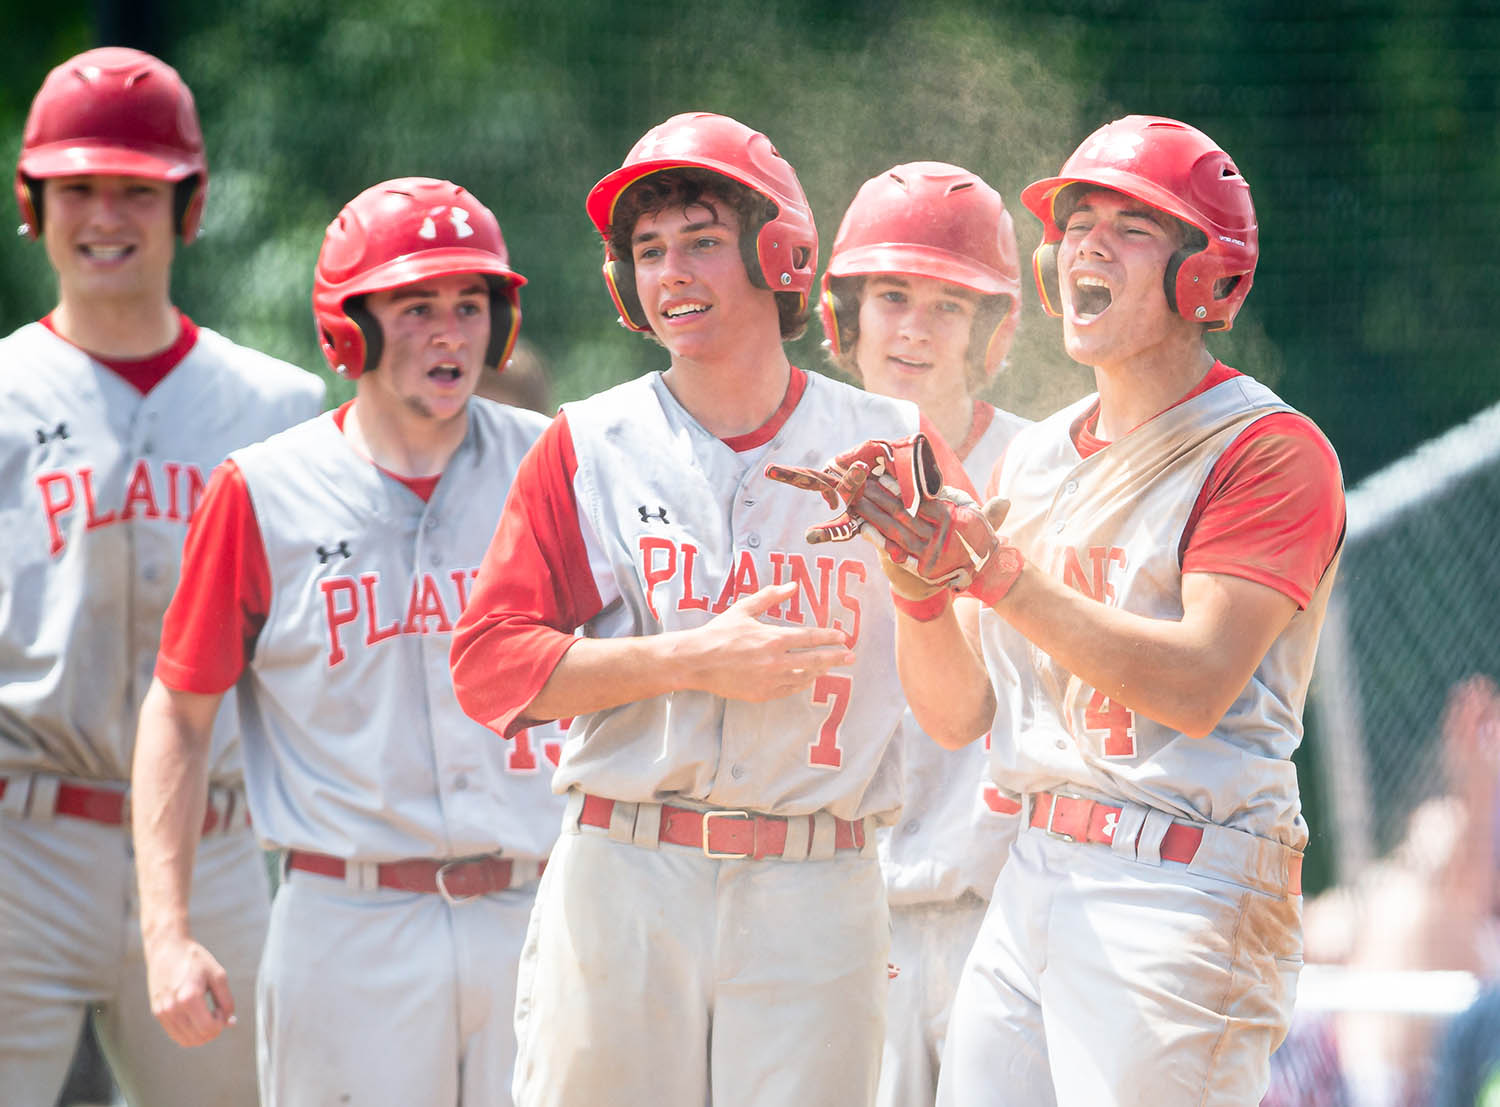 Pleasant Plains' Joe Lee (14) and Jack Shaffer (7) celebrate after Lee beat the throw home and scored a run off a 3 RBI triple from Pleasant Plains' Cam Furbeck (23) putting the Cardinals up 10-4 over New Berlin in the 5th Inning in the Class 2A Pleasant Plains Sectional championship game at Reiser Field, Saturday, May 25, 2019, in Pleasant Plains, Ill. [Justin L. Fowler/The State Journal-Register]